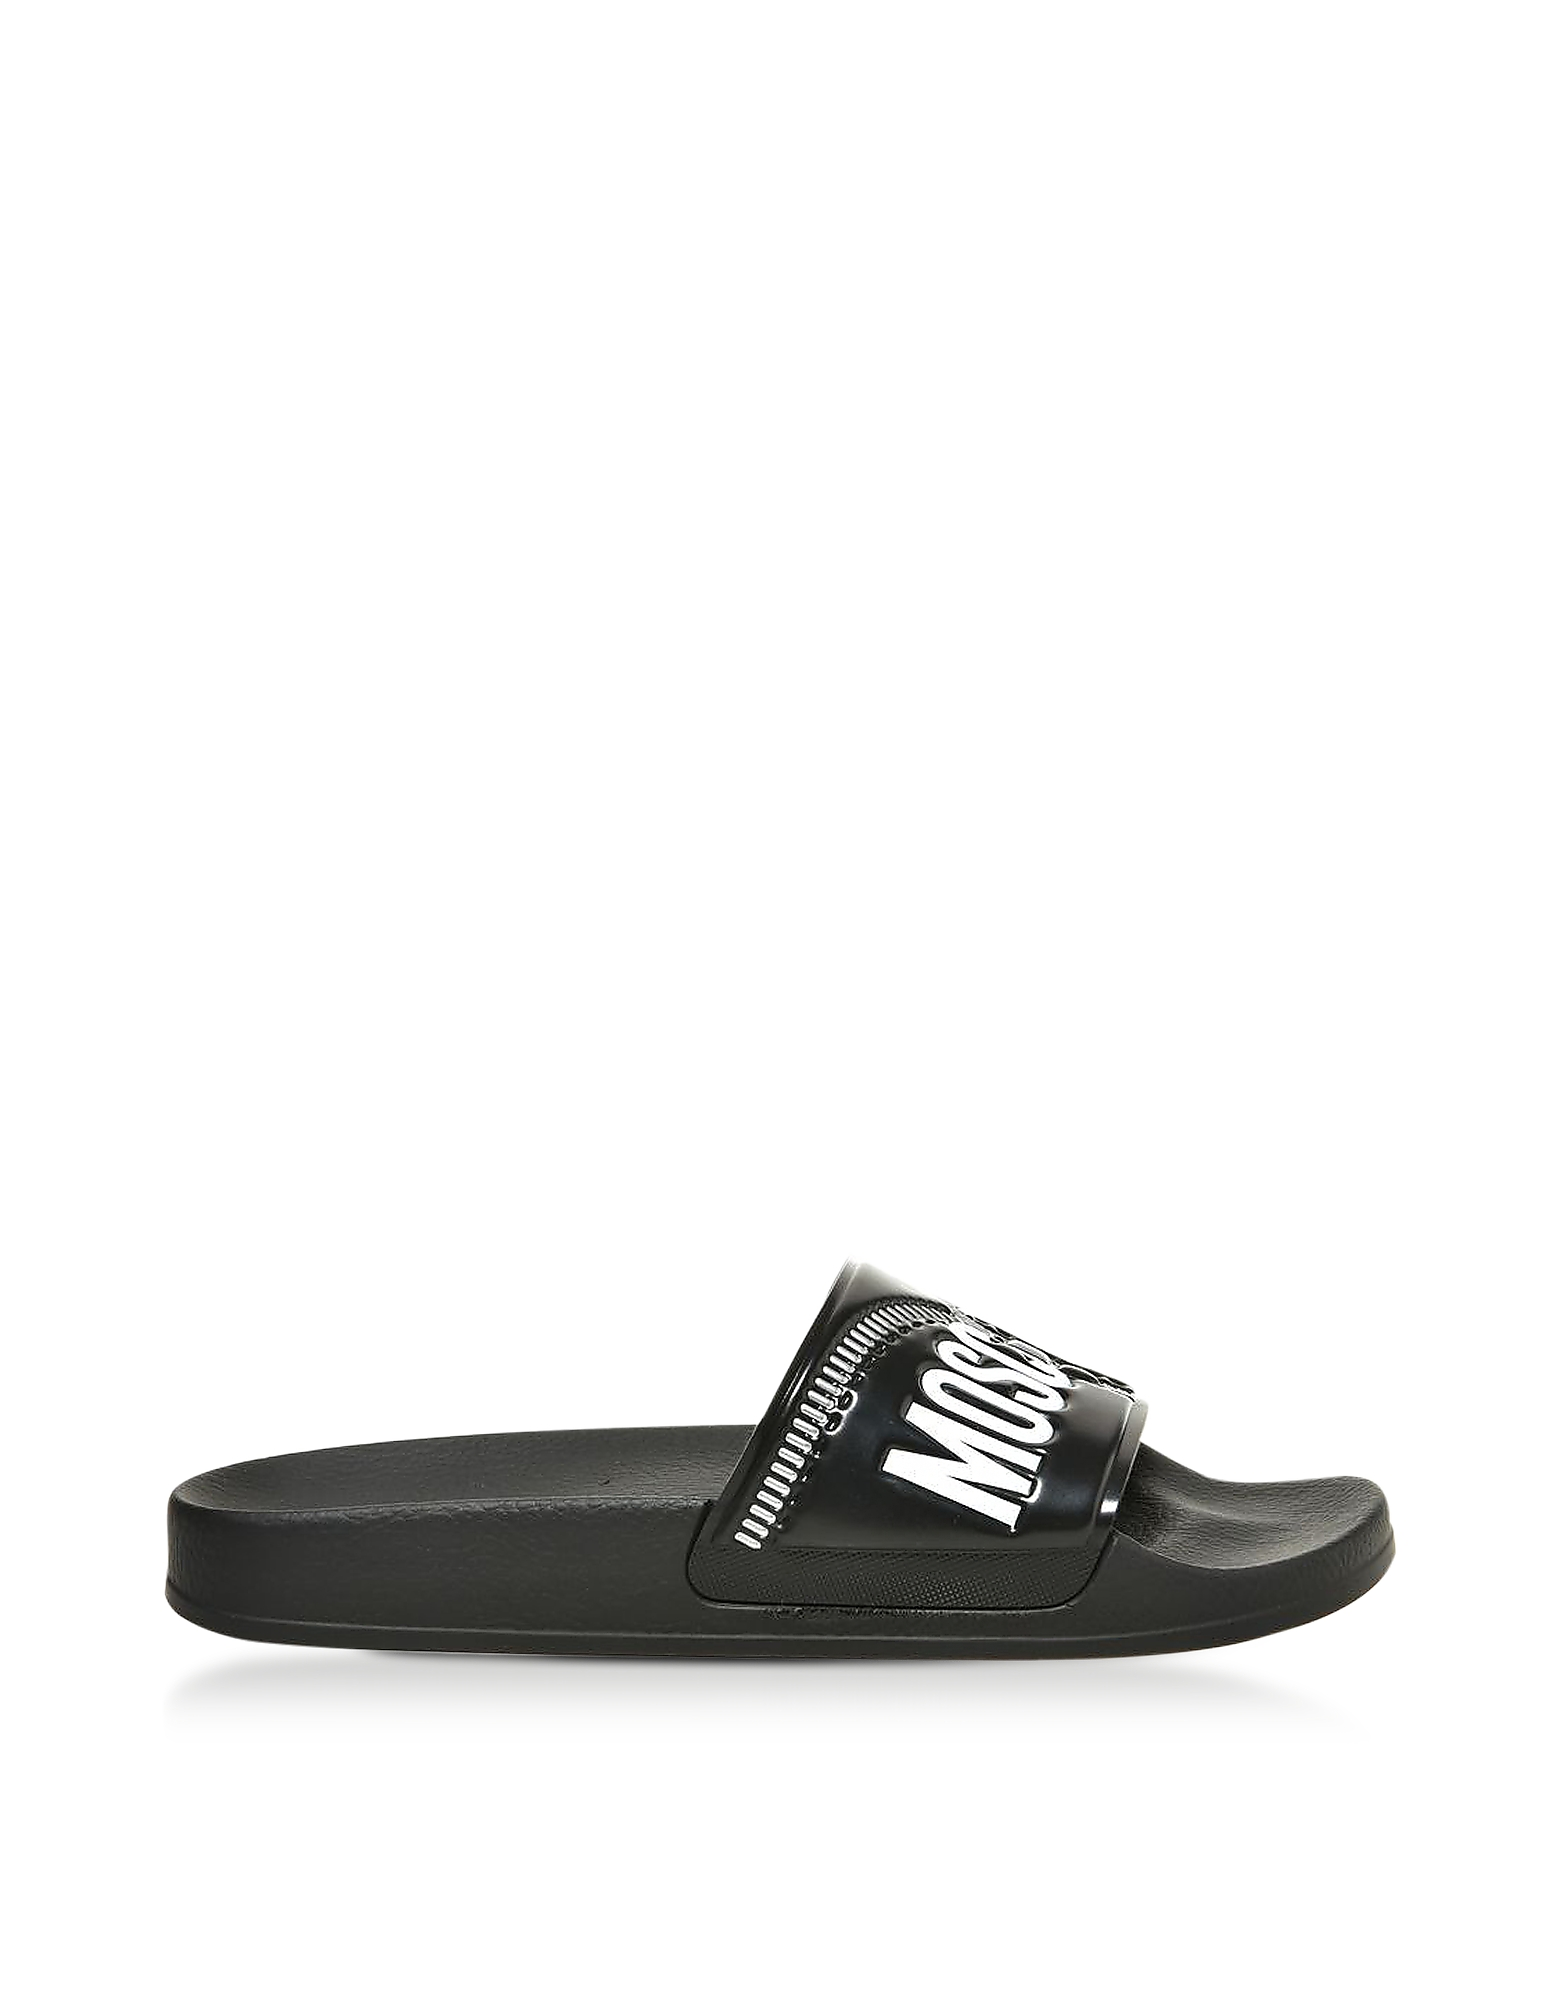 Black Zip Printed Pvc Pool Sandals